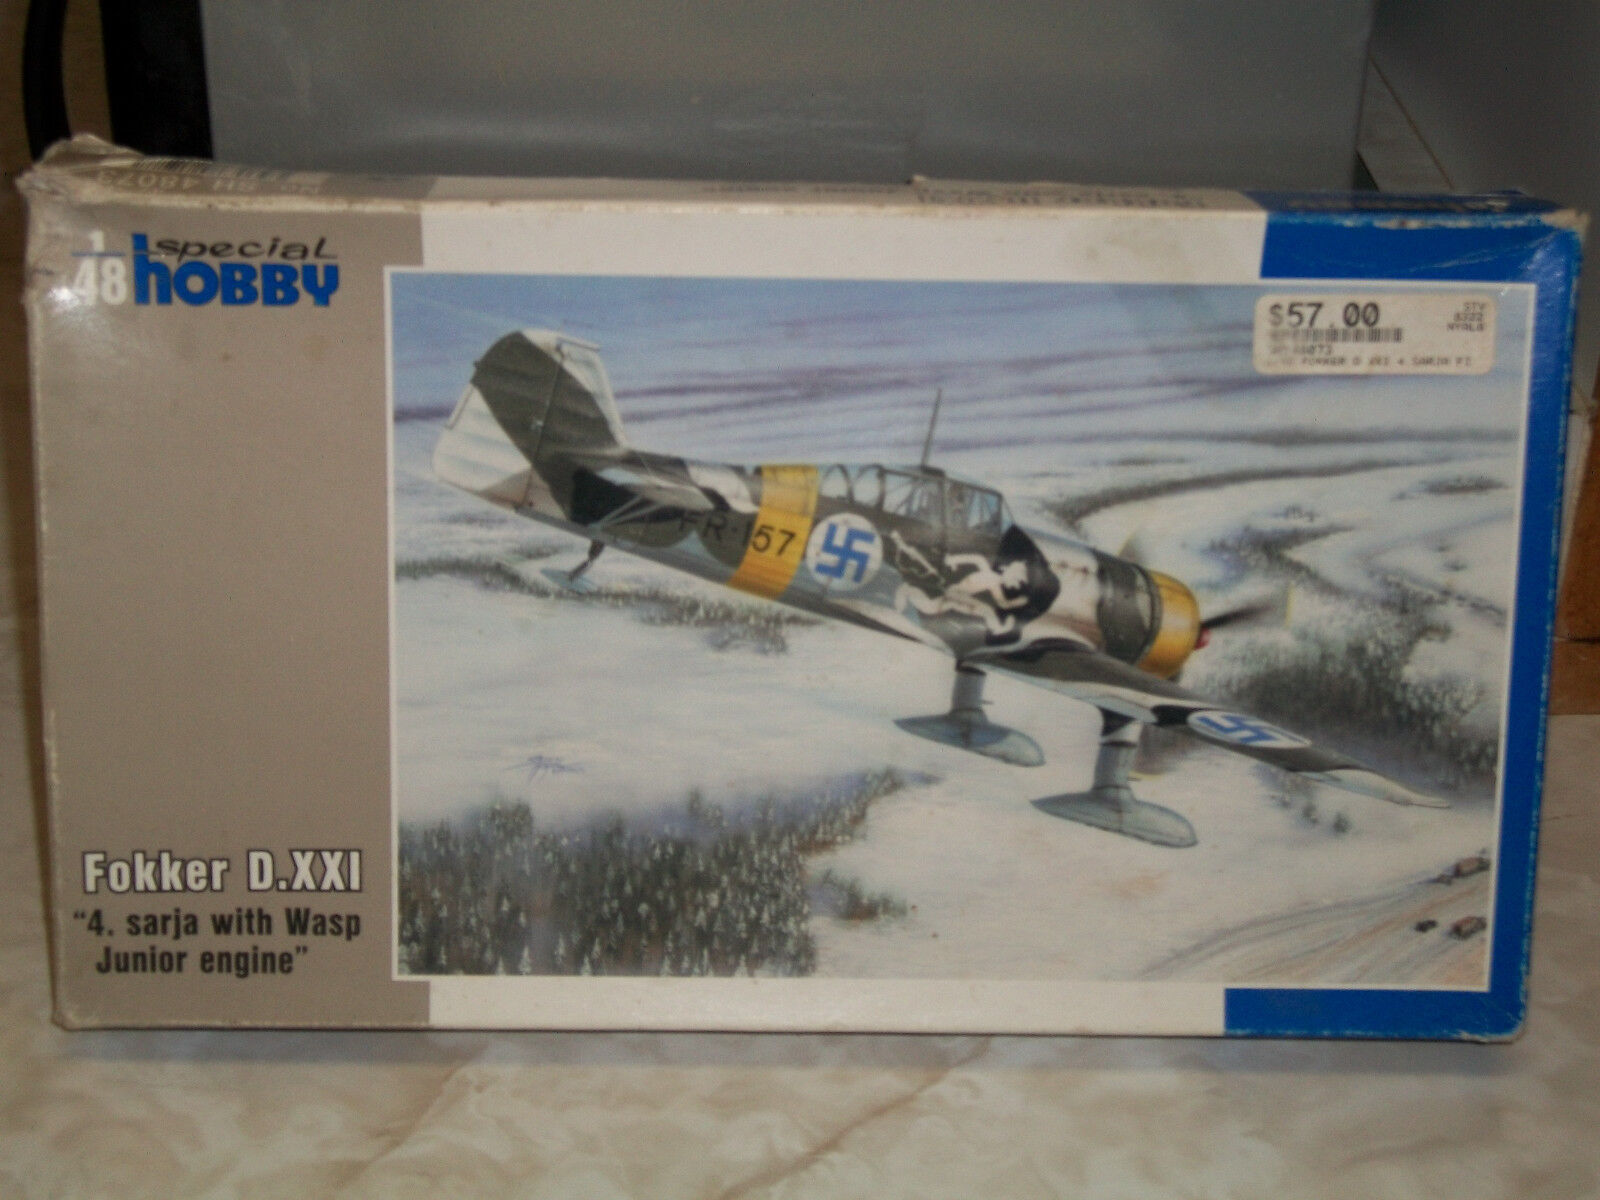 Special Hobby 1 48 Scale Fokker D.XXI  4. Sarja With Wasp Junior Engine